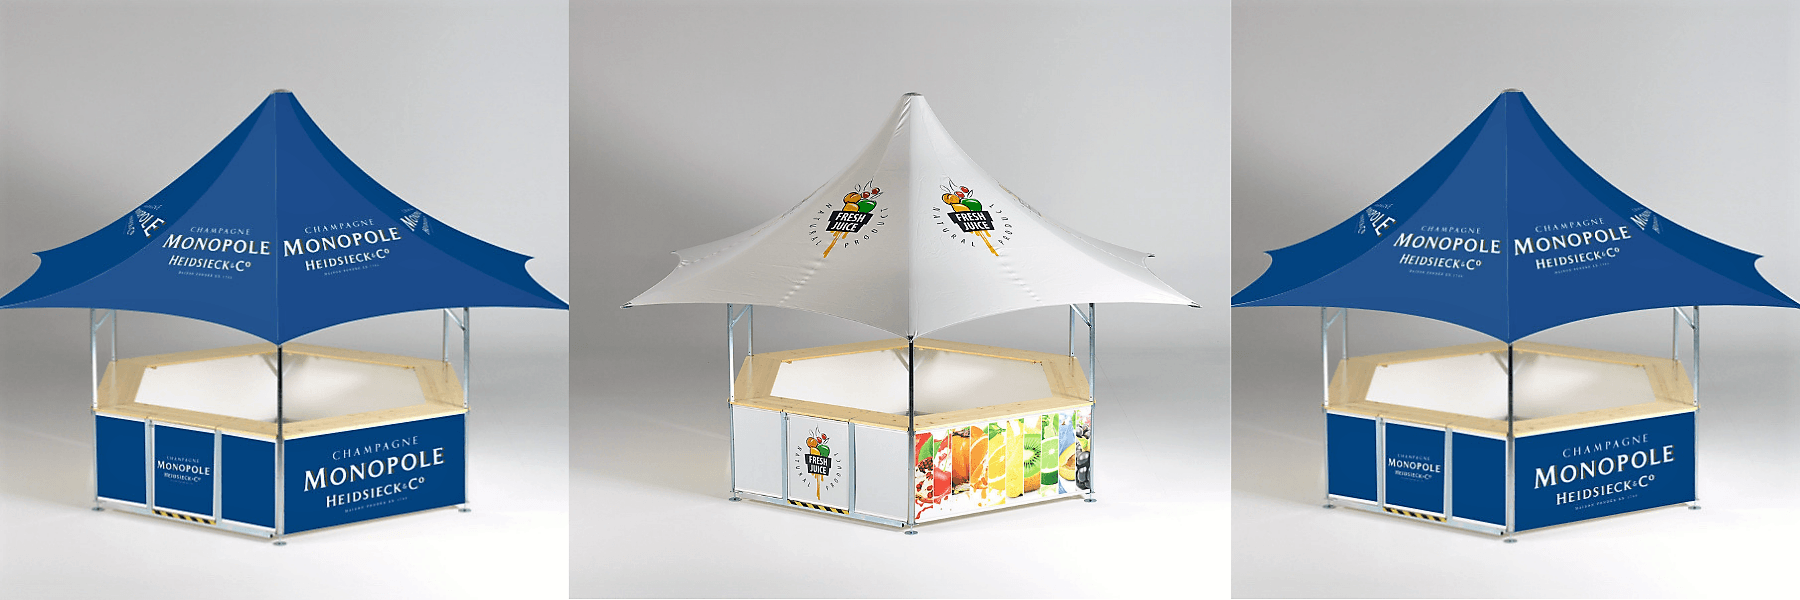 <p>Event, Mobile & Stadia Bars – Tents & Marquees – Star Pavilion</p> <p> </p> <p>Elegant Outdoor Event Bar</p> <p> </p> <p>Ideally suited for serving premium champagne brands from at high-class sporting events, venues and attractions.</p>